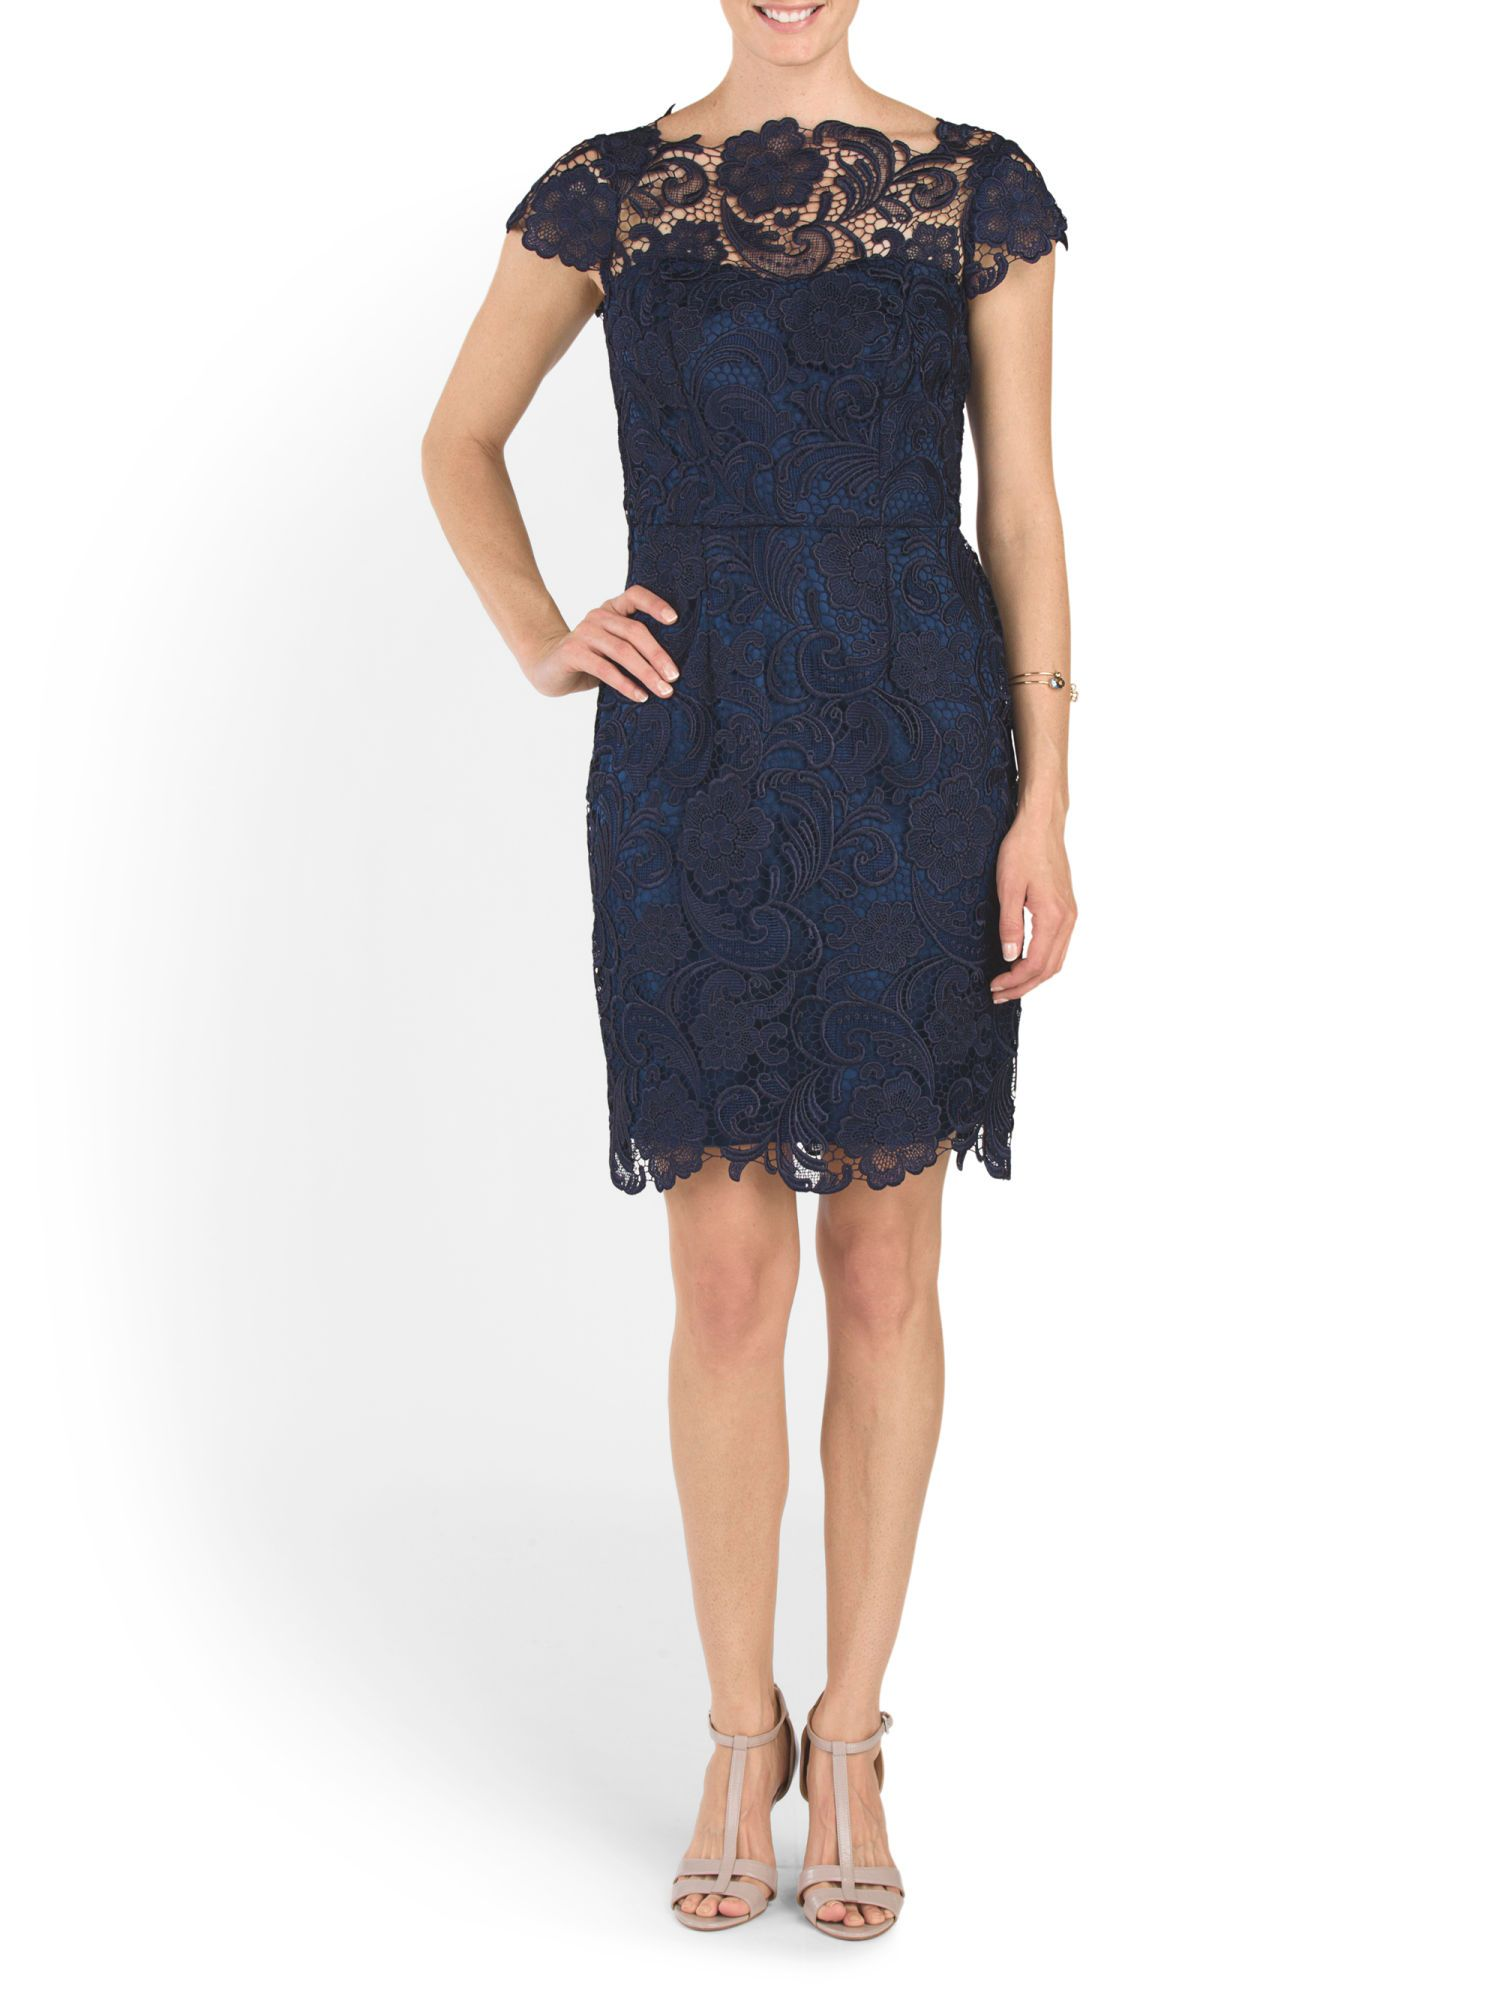 Lace Shift Dress - Wedding Guest - T.J.Maxx  Lace shift dress